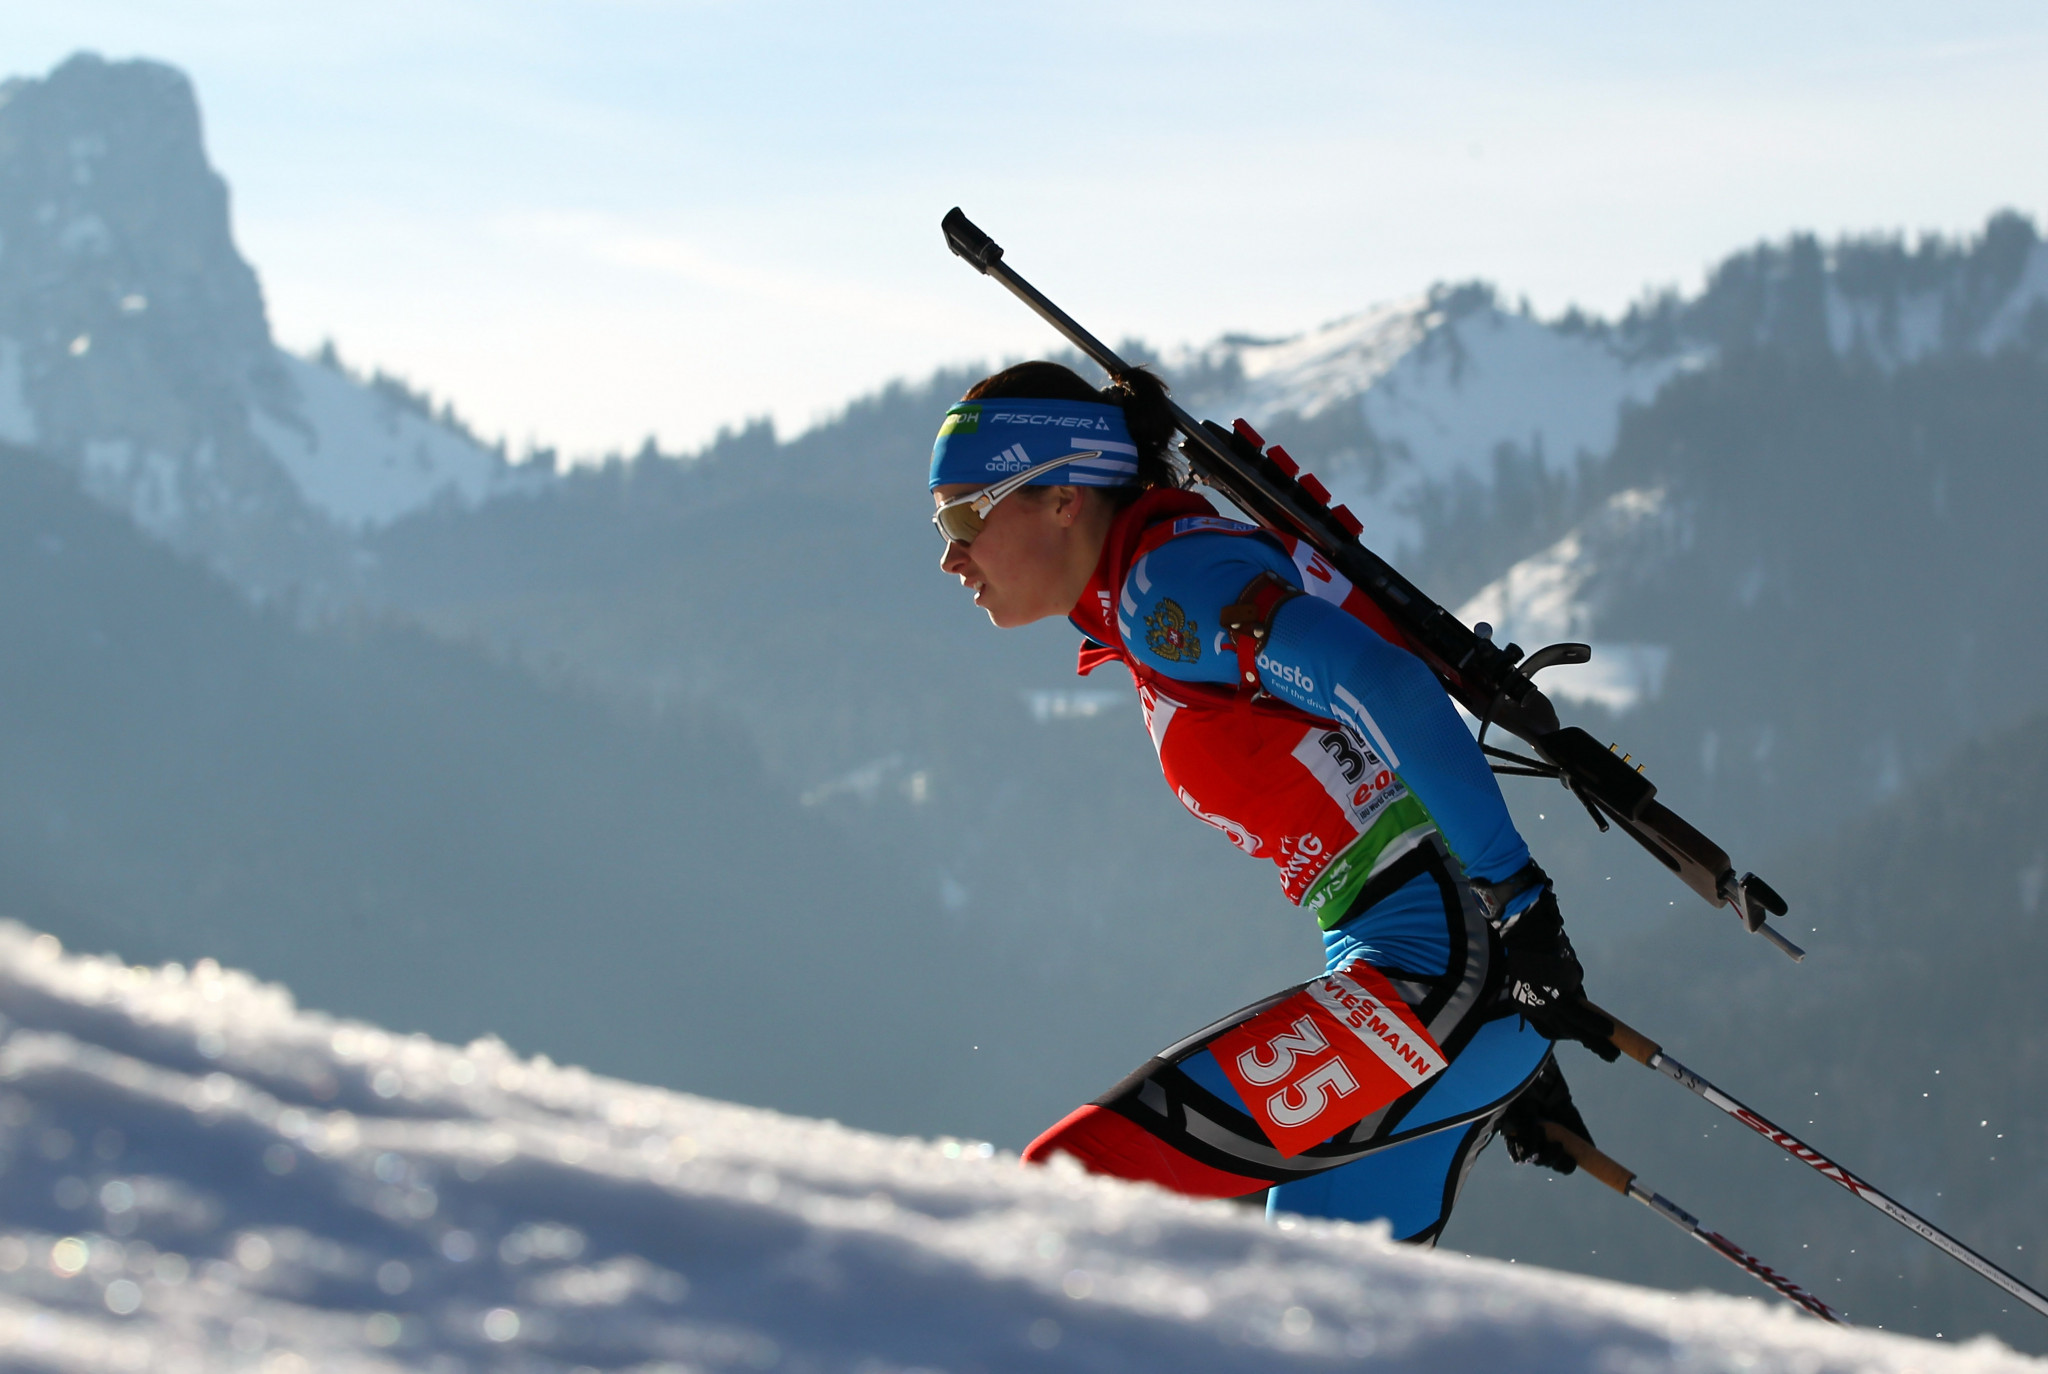 Russian biathlon has been hugely impacted by the country's doping crisis ©Getty Images